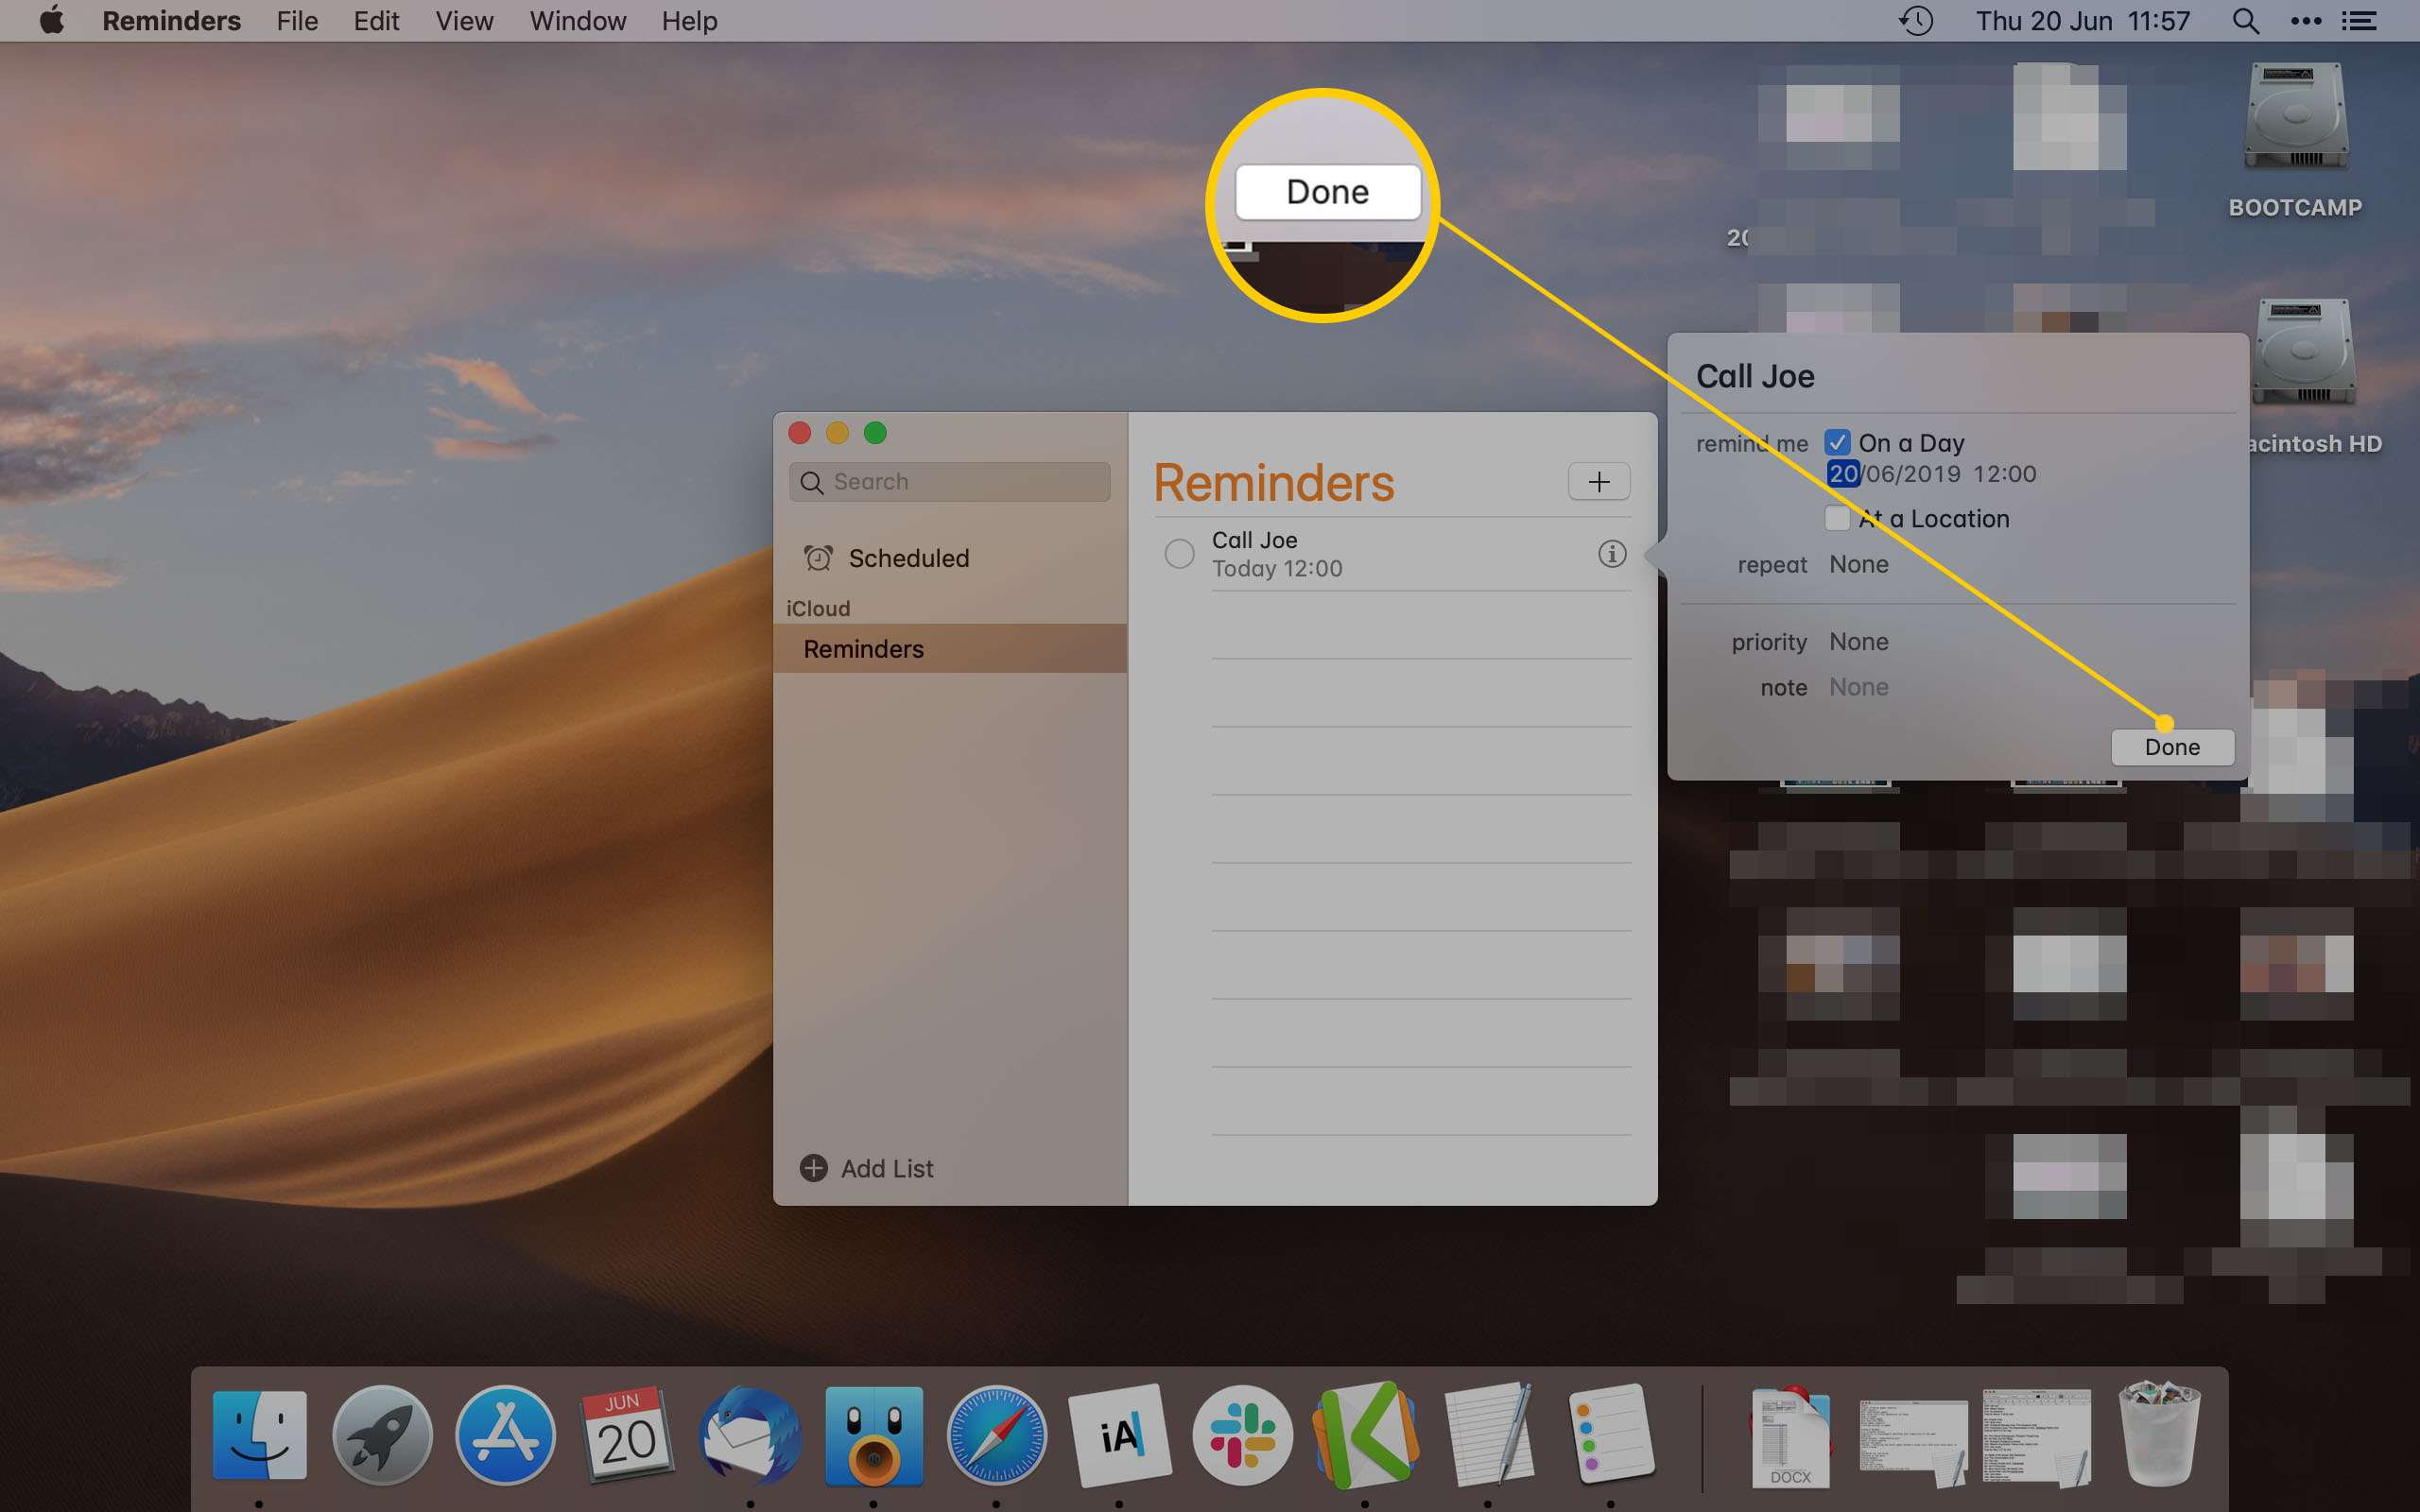 Mac Reminder App Highlighting the Done button